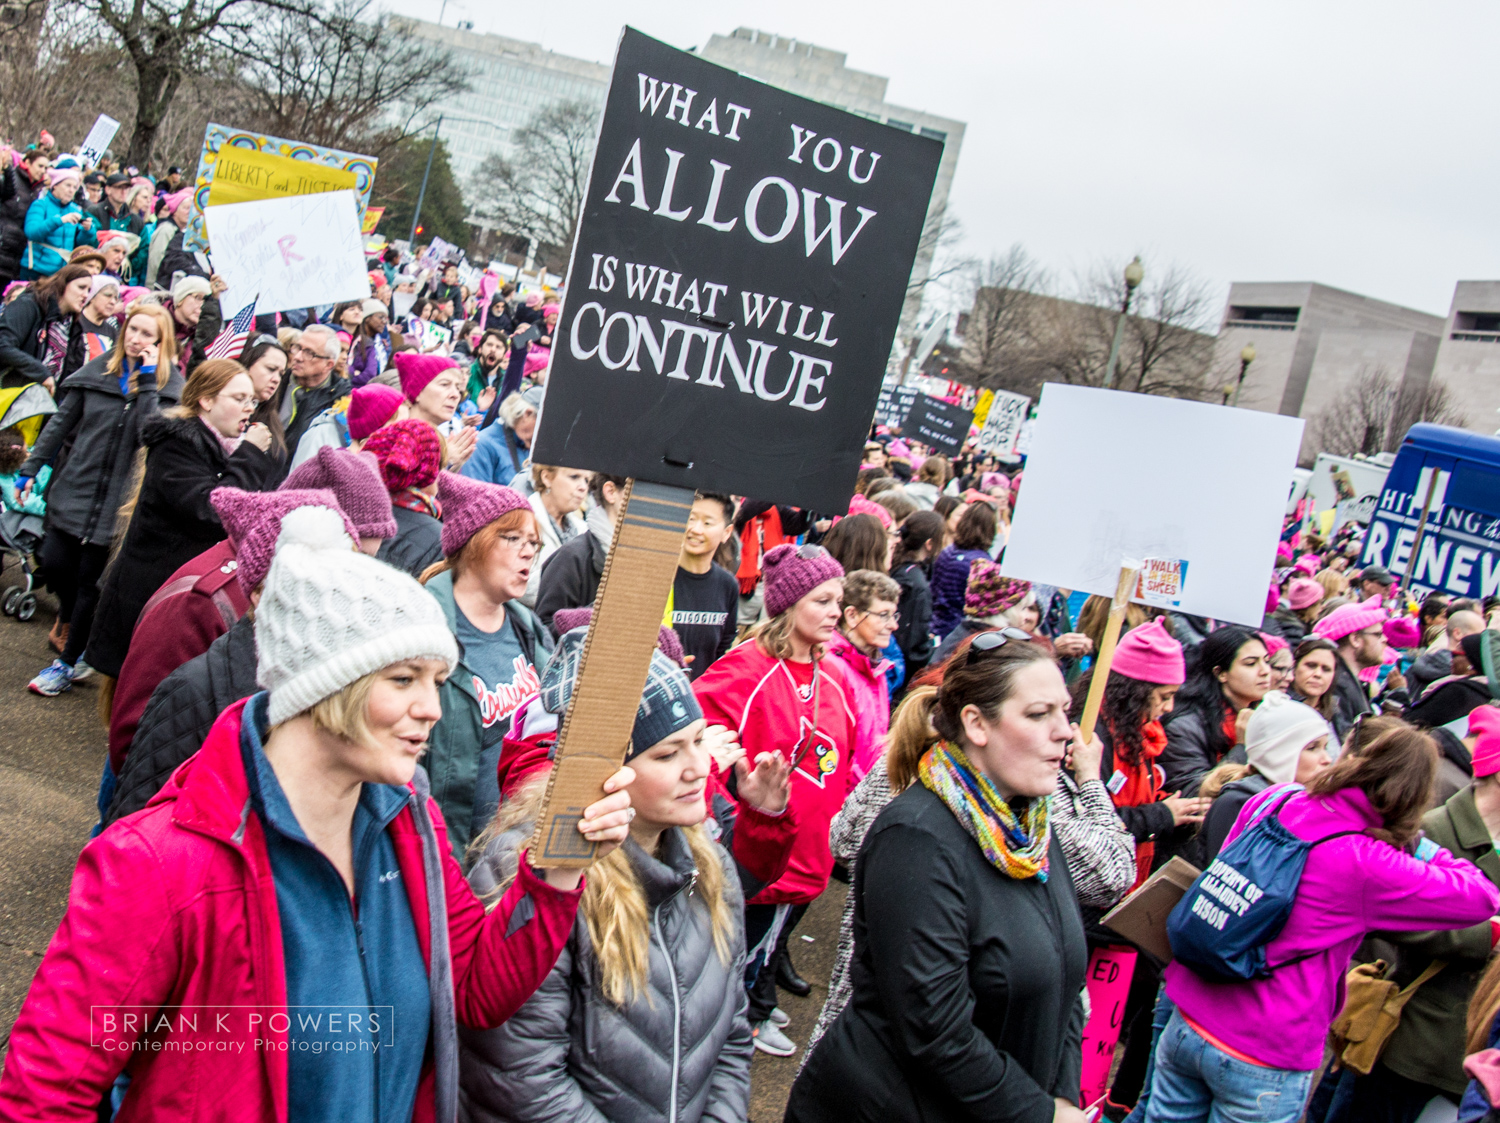 Womens-march-on-washington-2017-Brian-K-Powers-Photography-0023.jpg